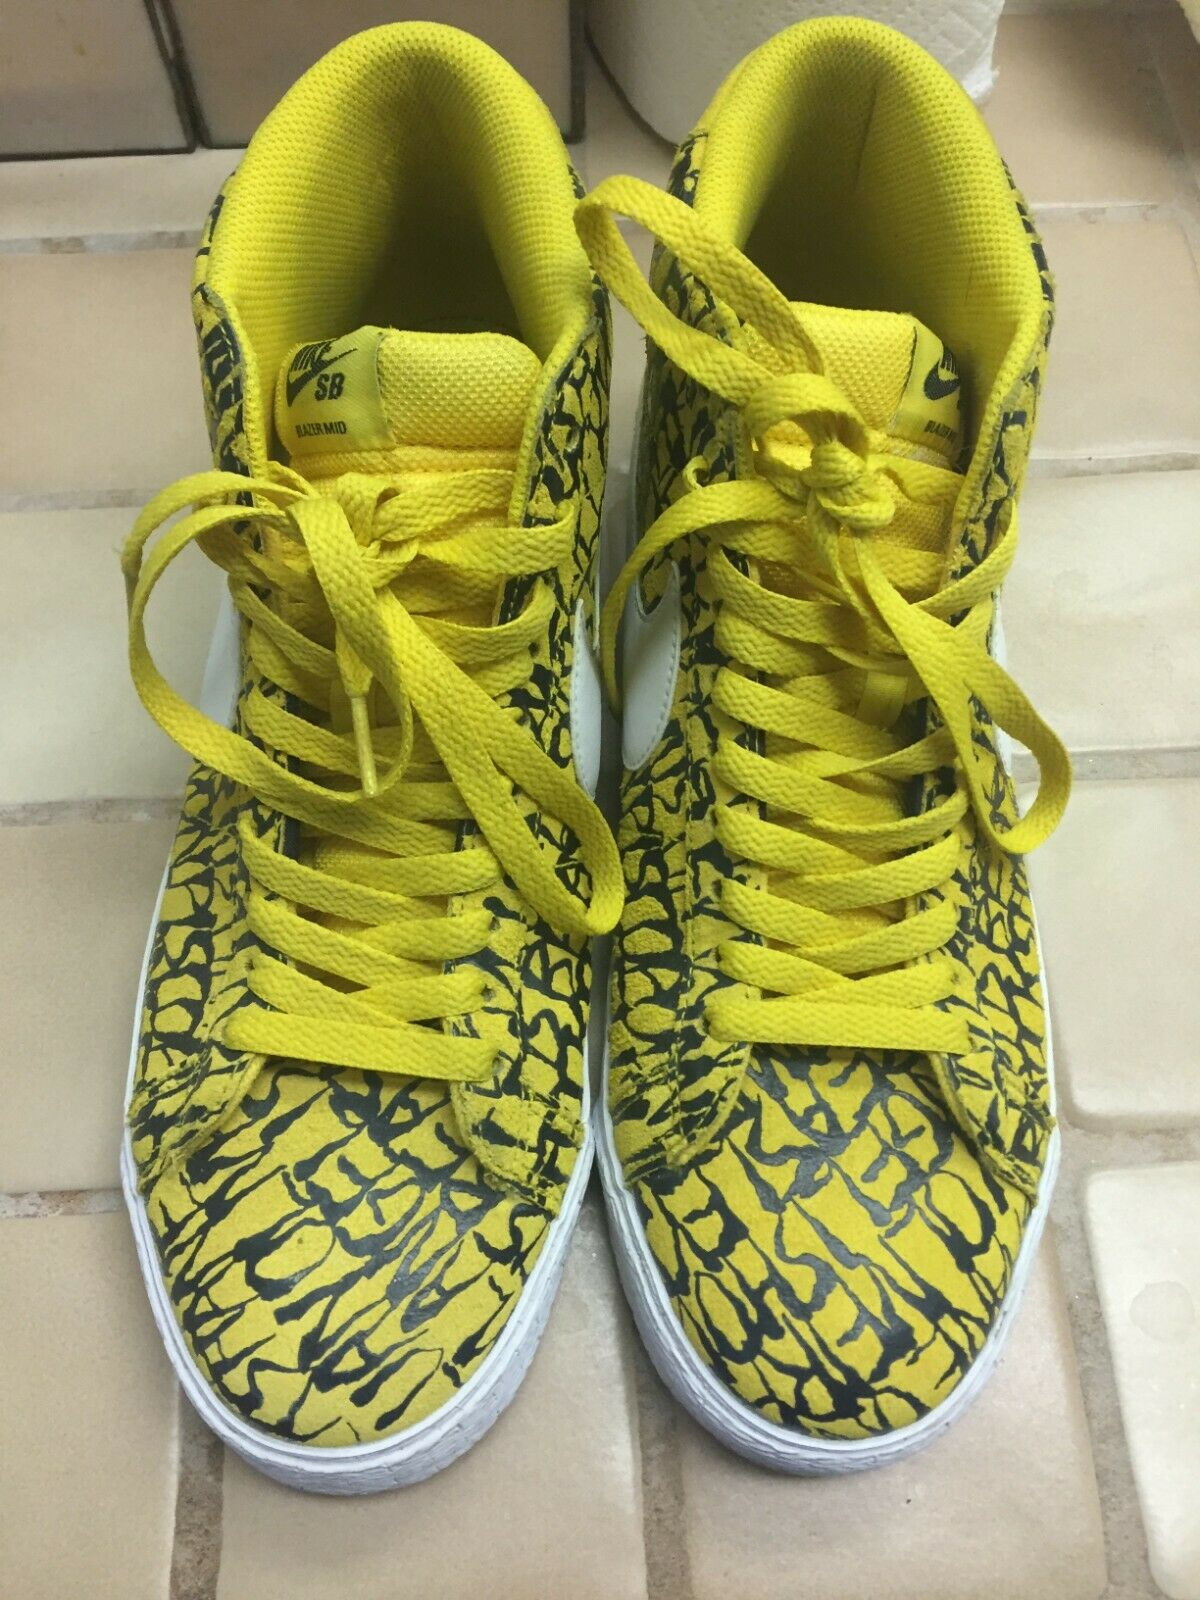 Nike SB Blazer   NECKFACE edition Size 10 Yellow High Top